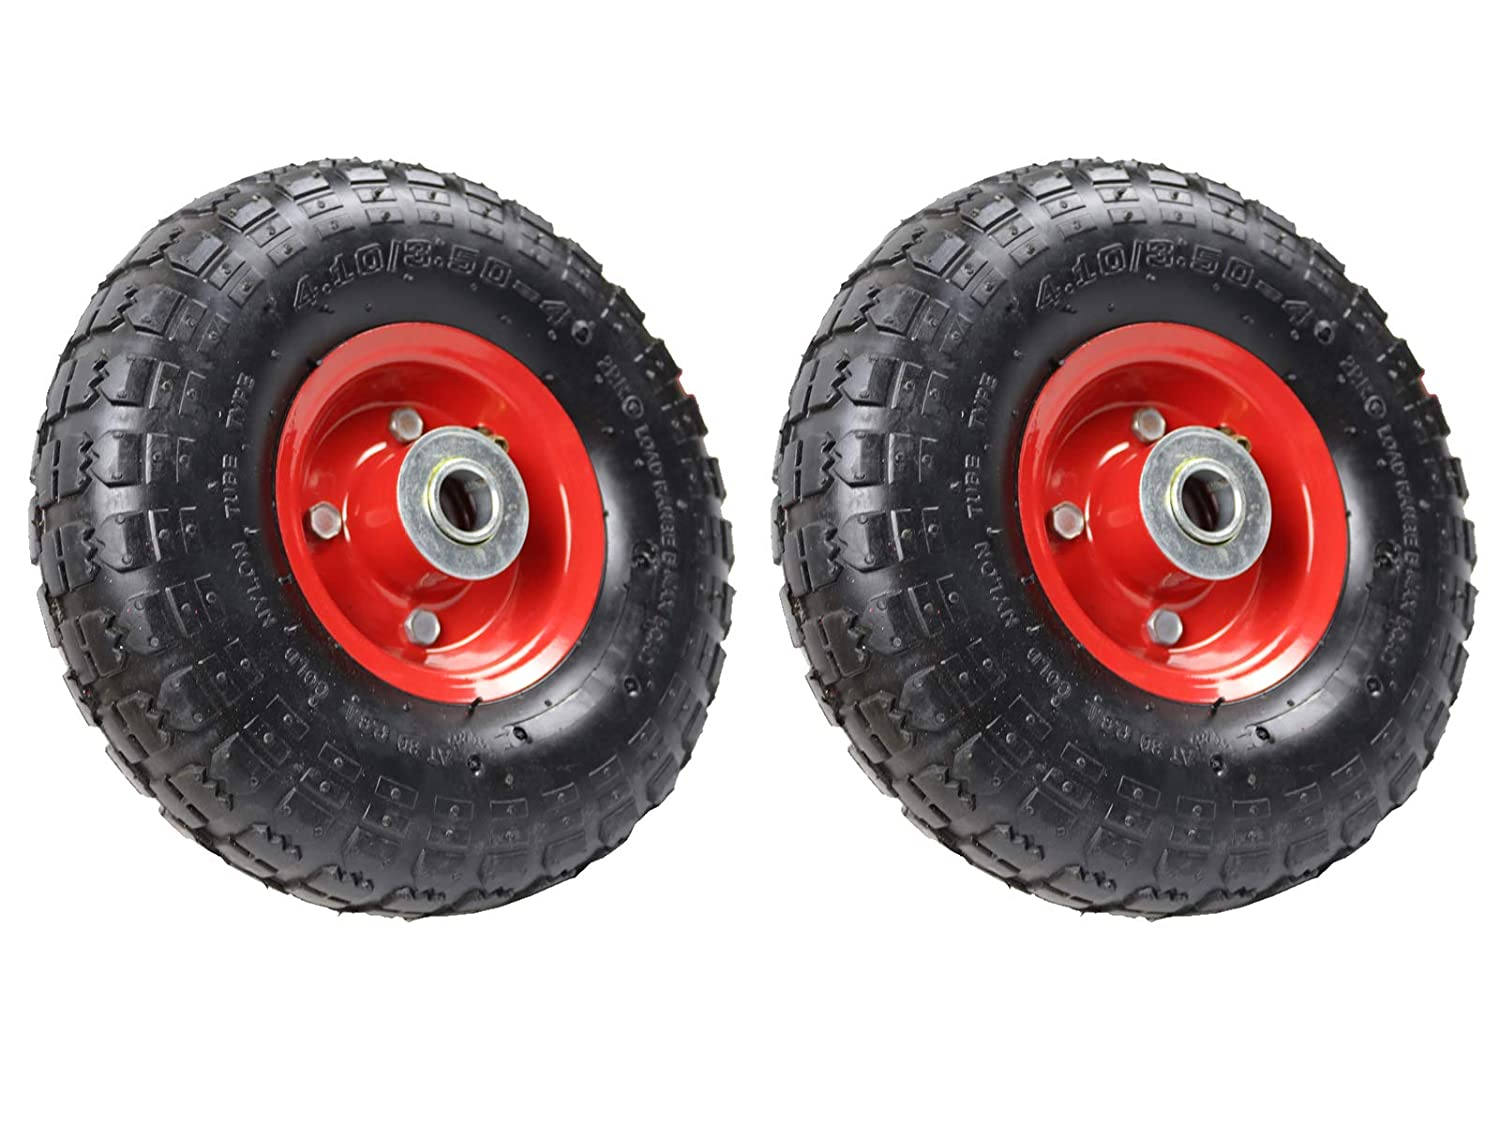 2x Replacement Wheel Sack Truck Trolley Red Metal Hub 20mm Bore 10 inch